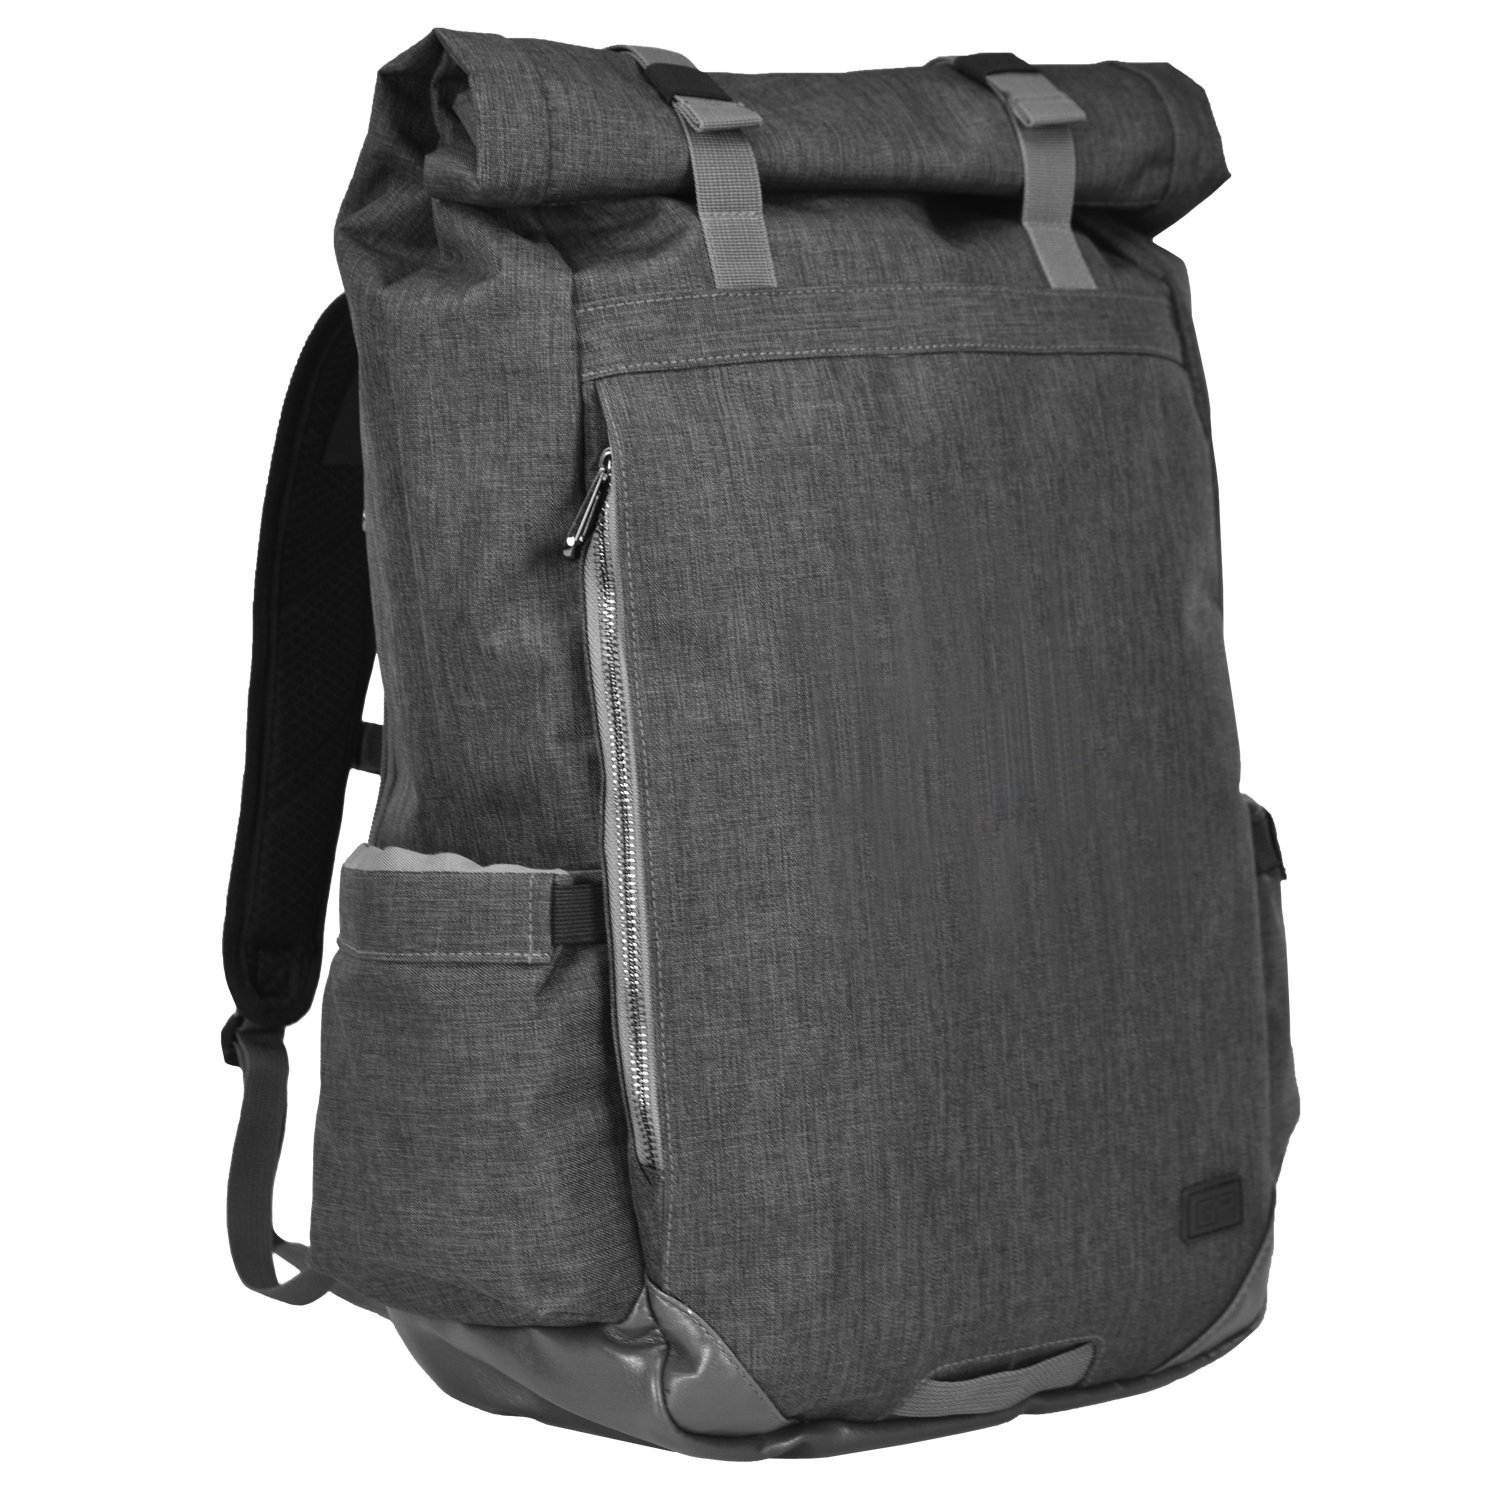 df2347ace3d Best Laptop Backpacks For College 2015 - CEAGESP